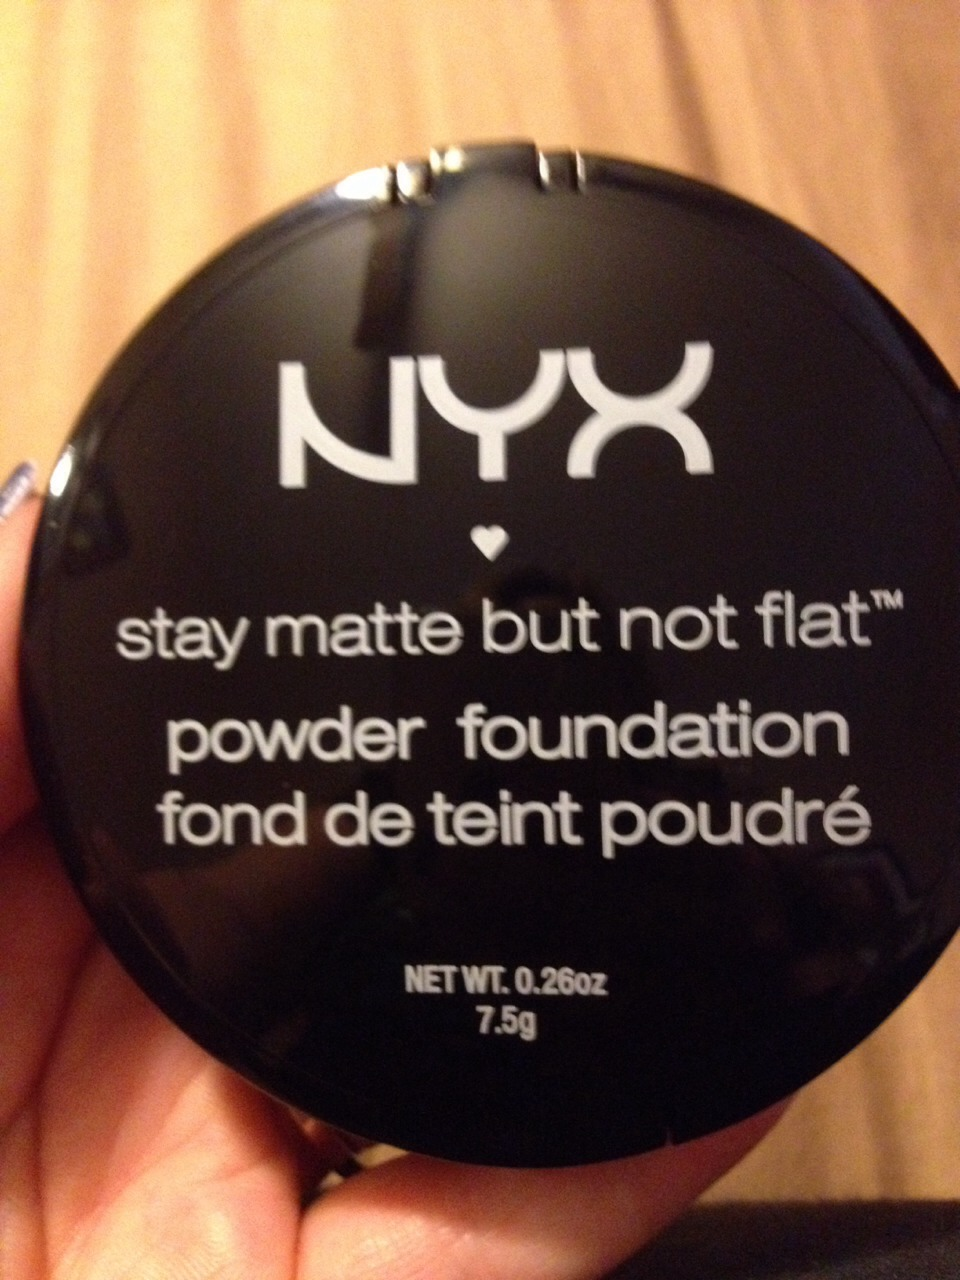 This foundations evens out everything looks so great $9.99